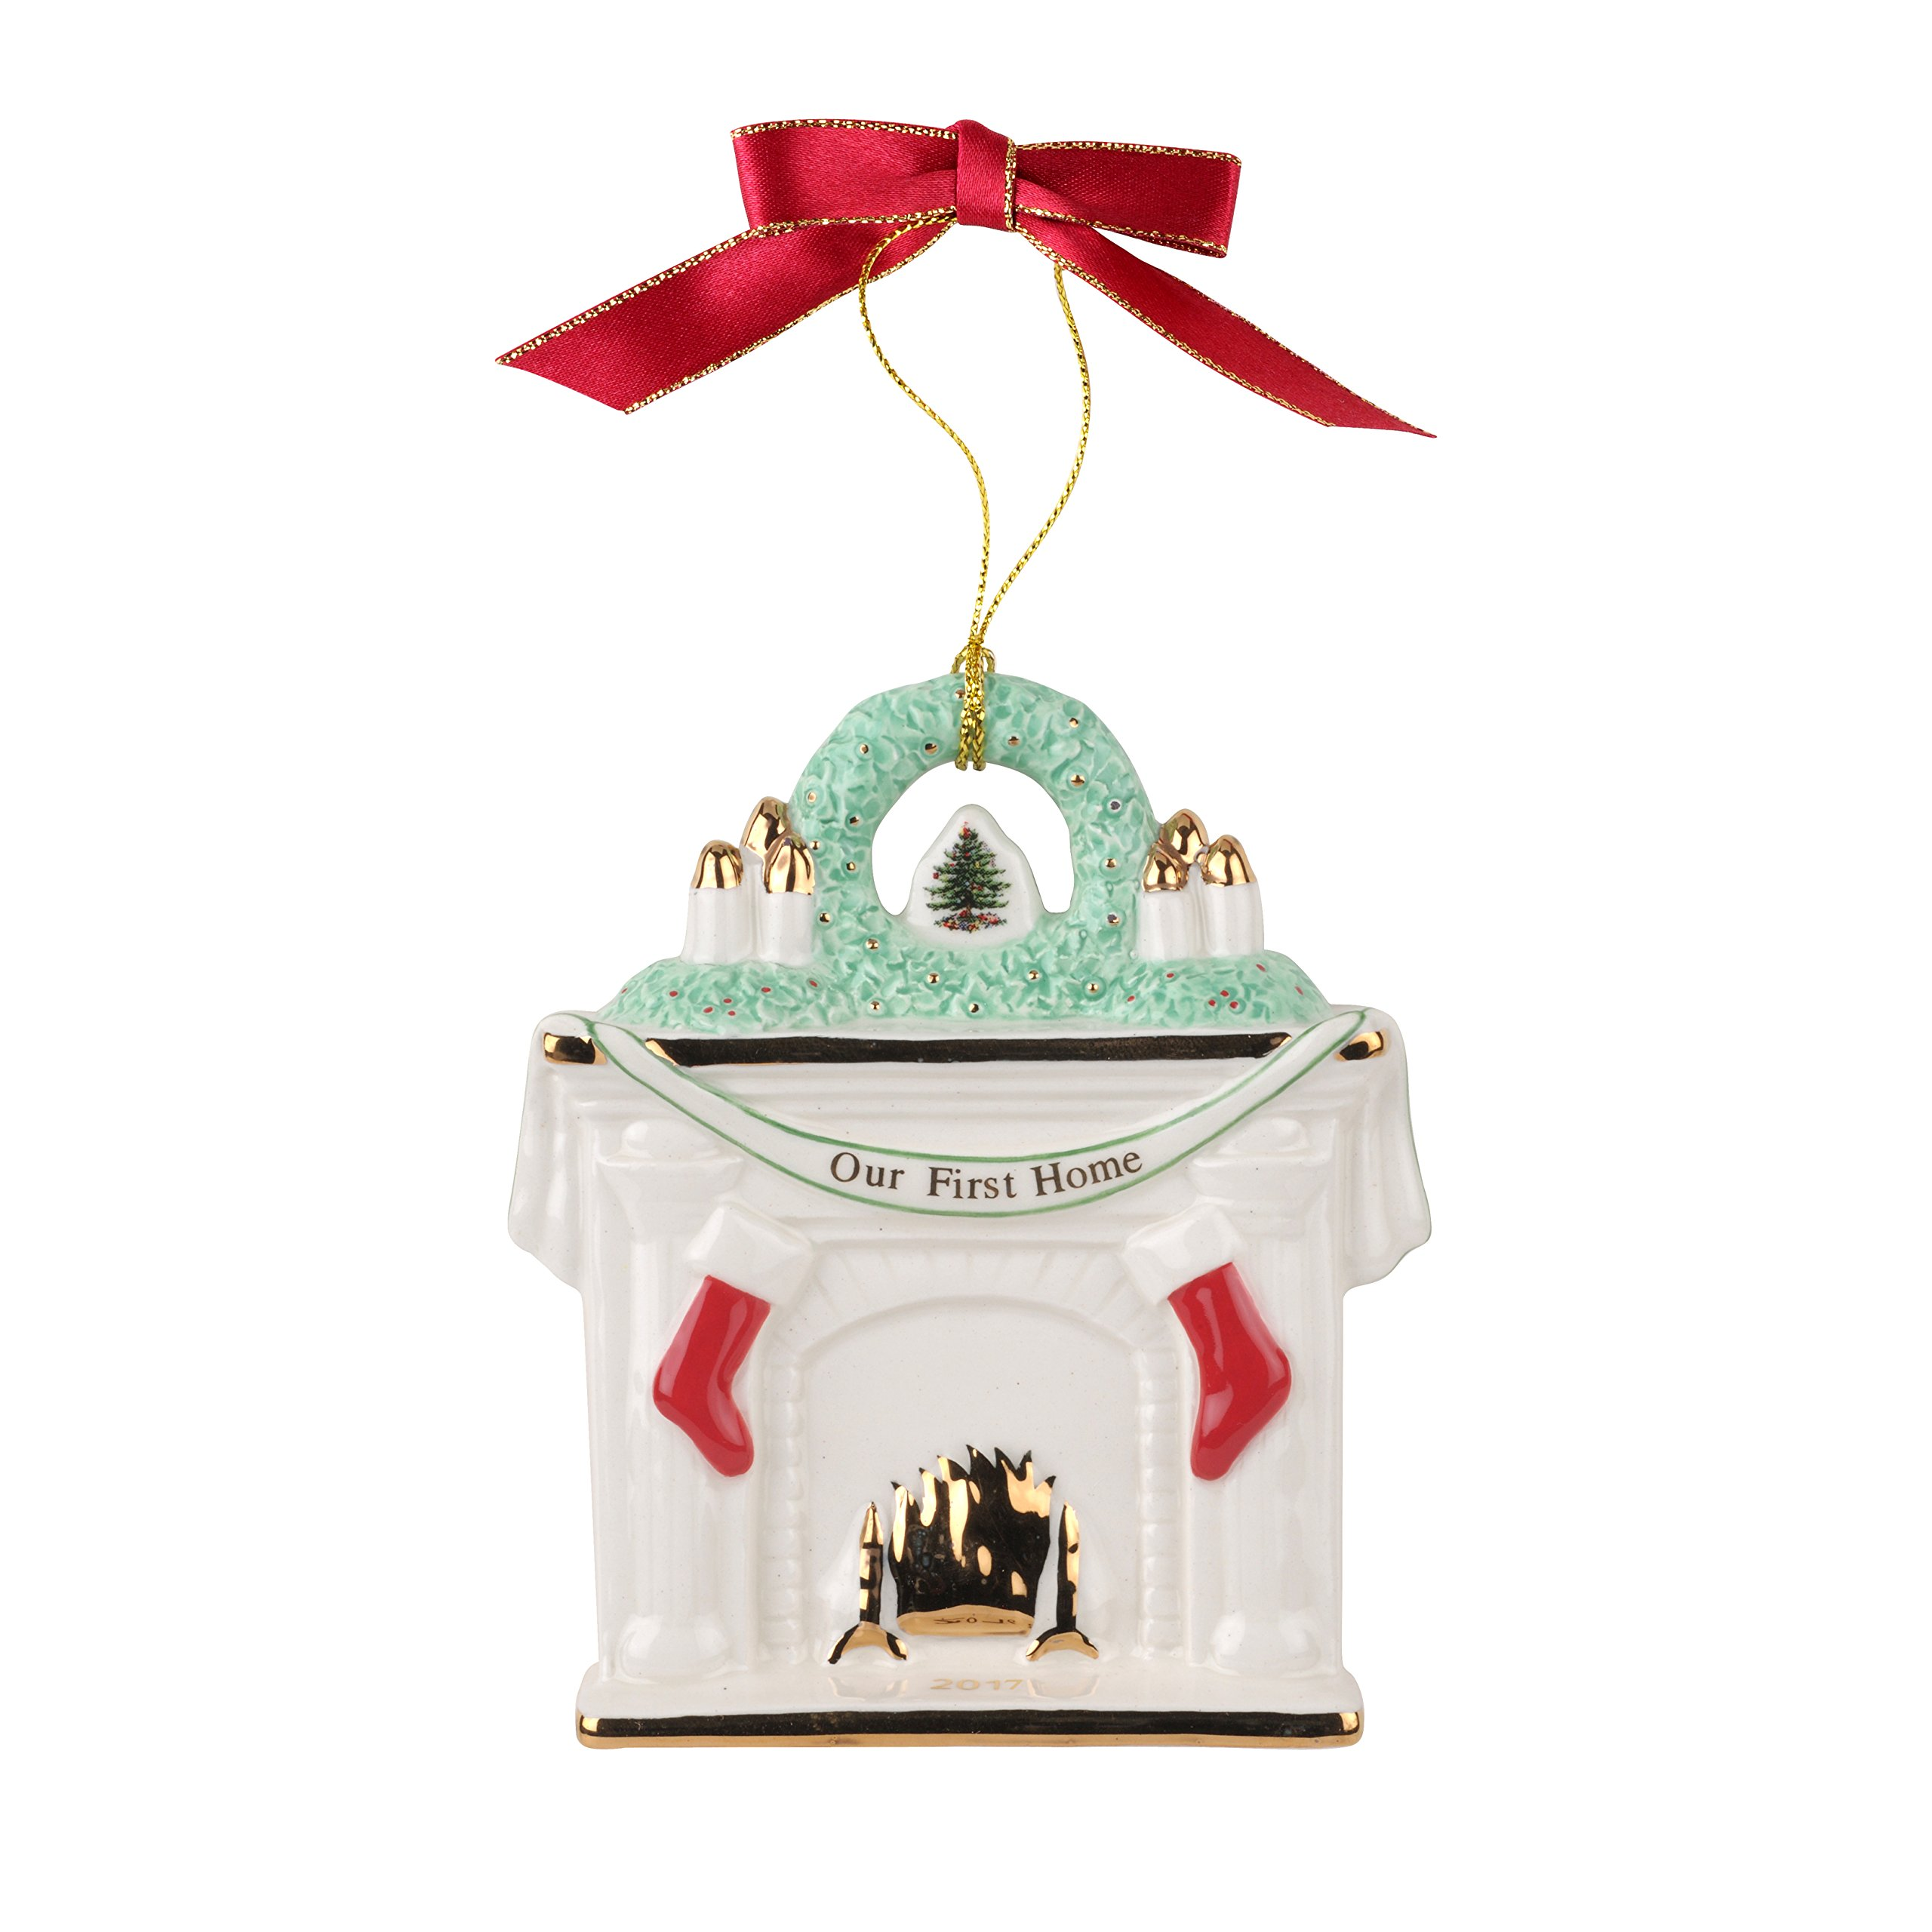 Spode Our First Home Fireplace 2017 Christmas Tree Ornament